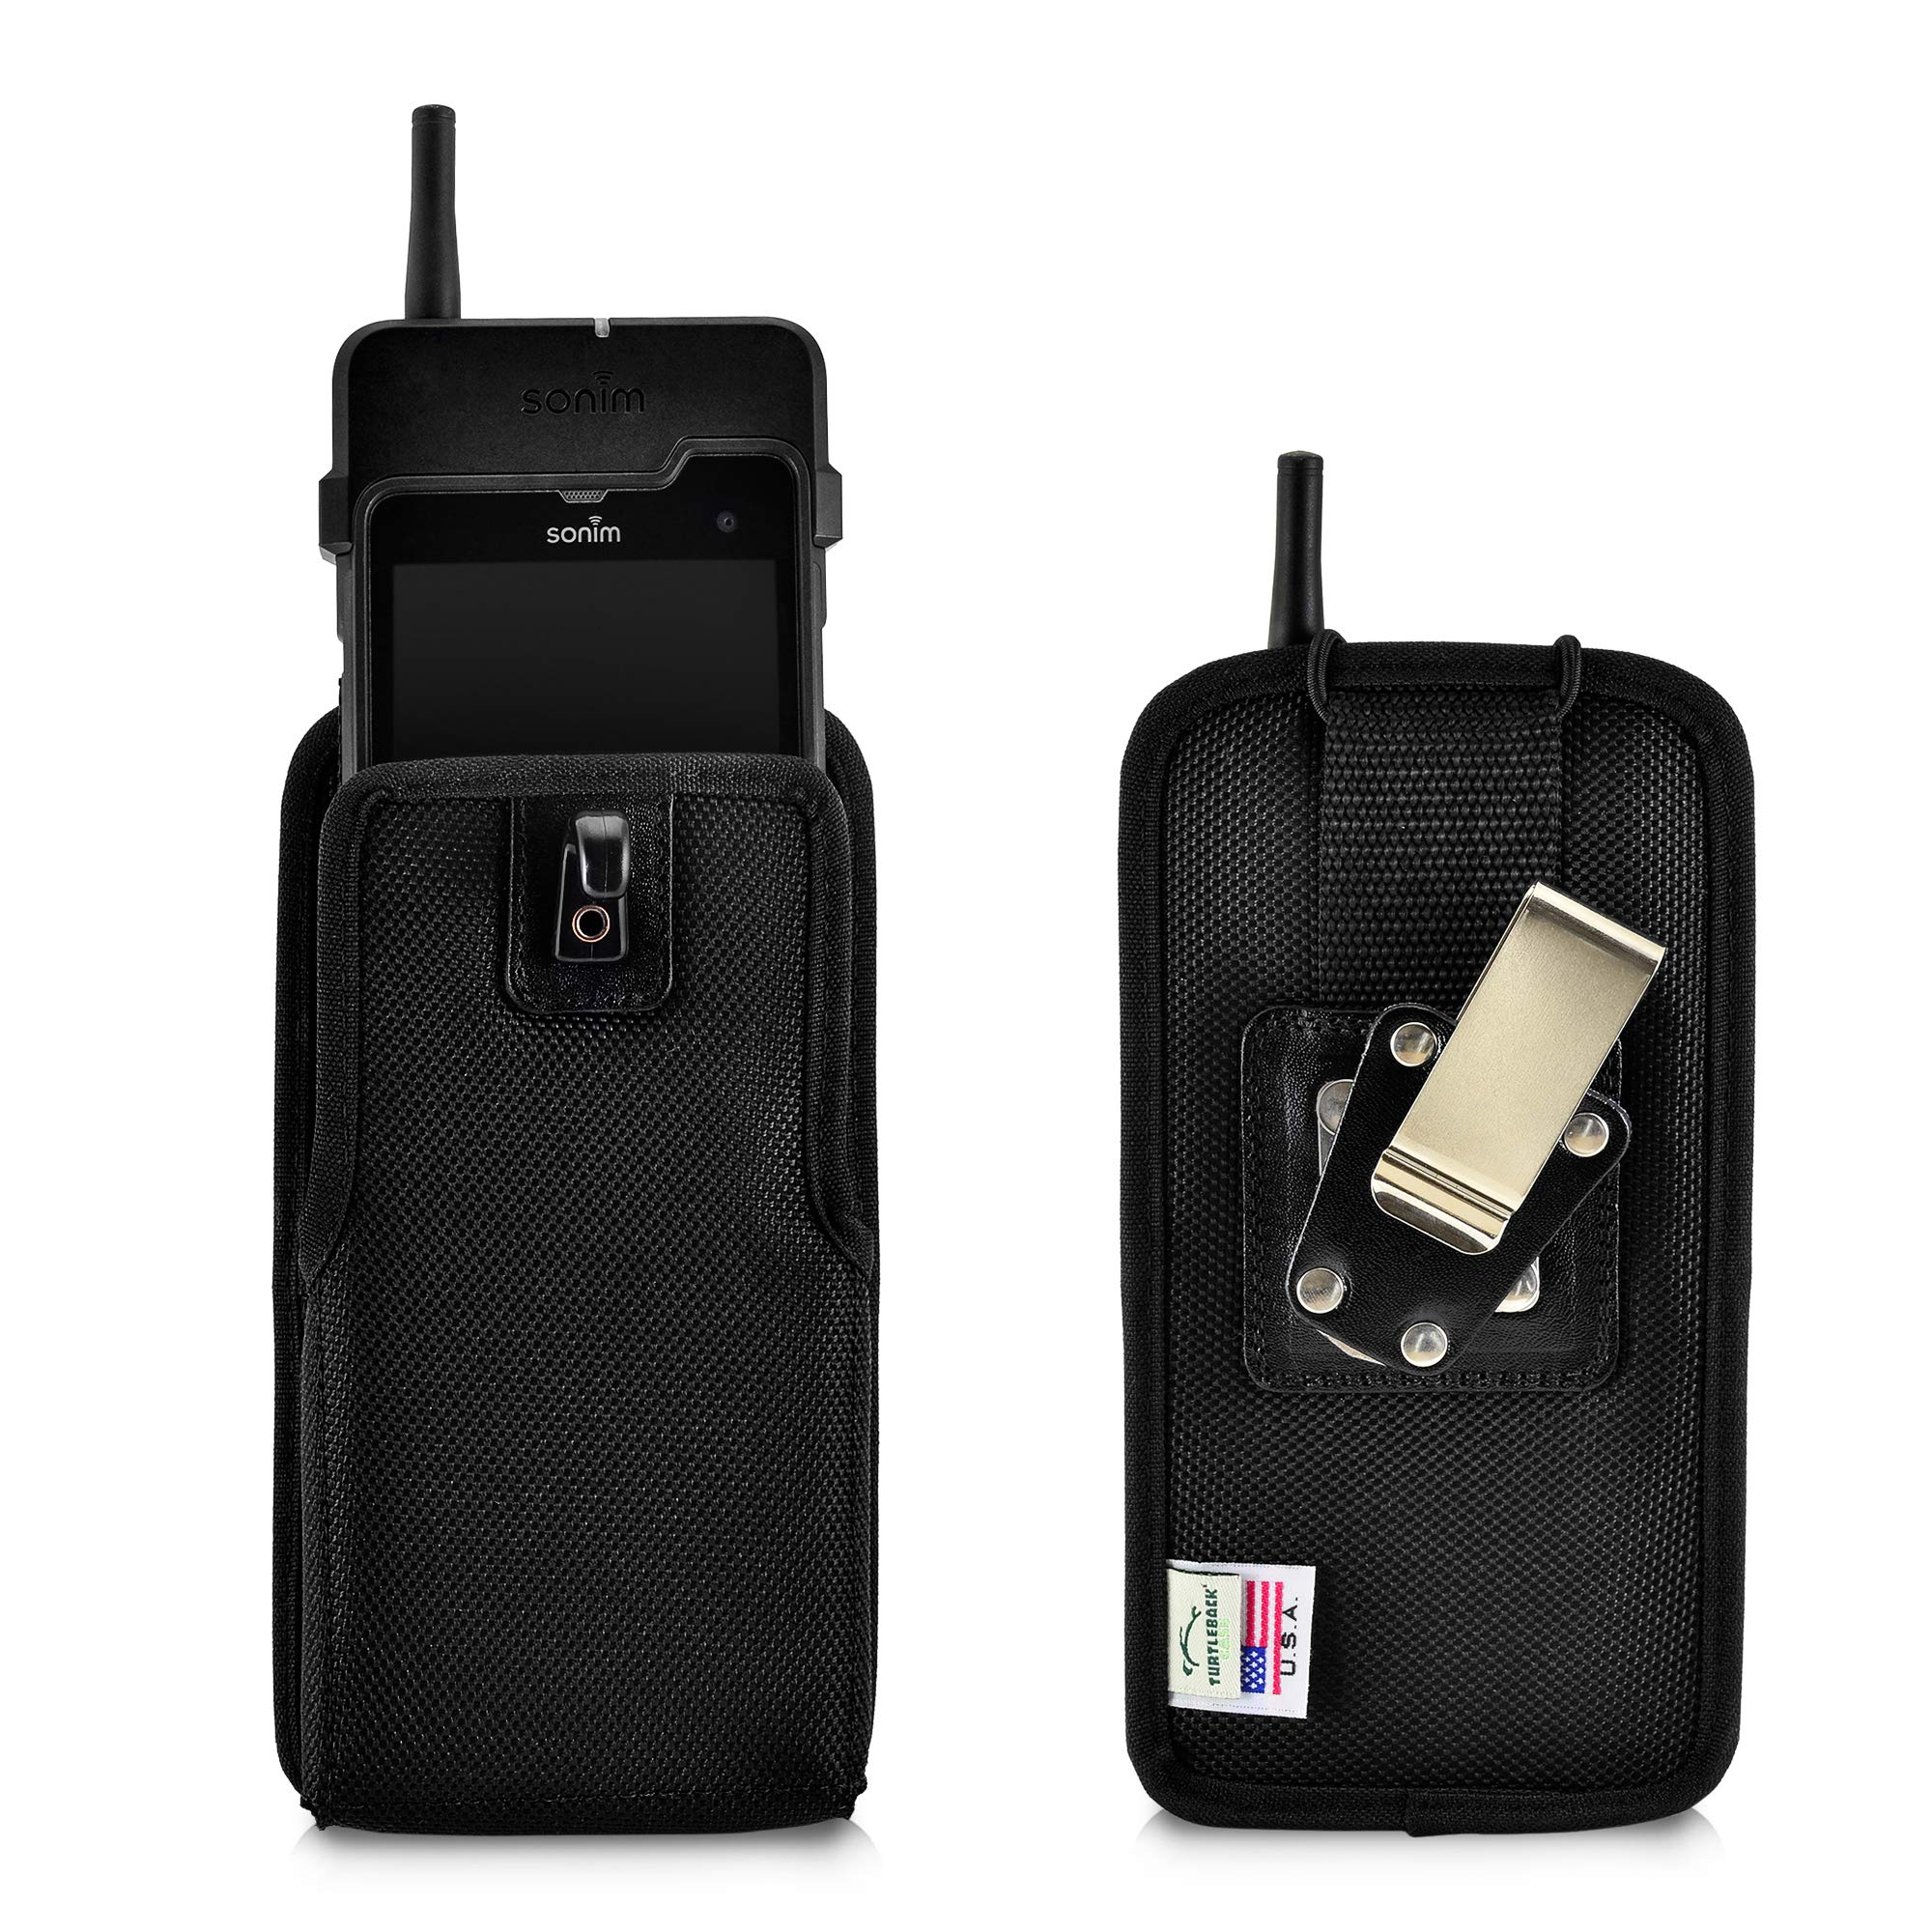 Turtleback Mobile Case Made for Sonim XP8 XPand Direct Mode Phone, Vertical Black Nylon with Rotating Metal Belt Clip